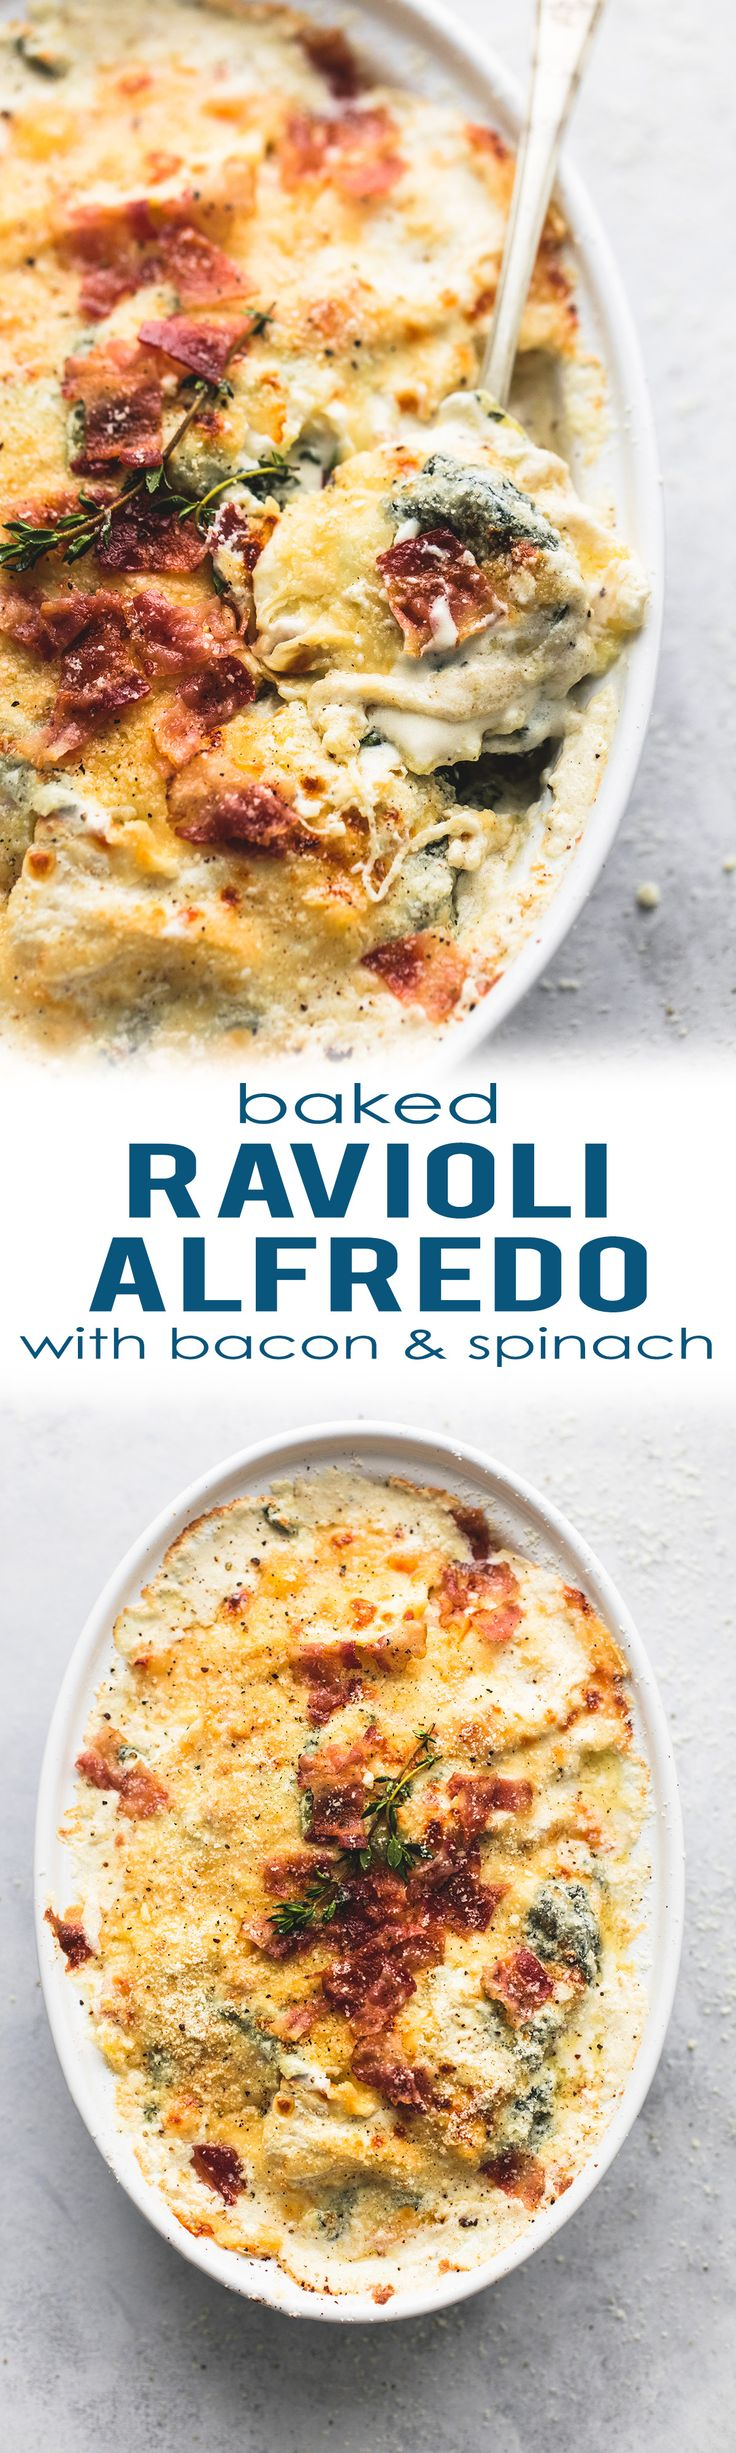 Learn how to make this easy Ravioli Alfredo Bake with Spinach & Bacon and the creamiest, cheesy parmesan alfredo sauce. | lecremedelacrumb.com